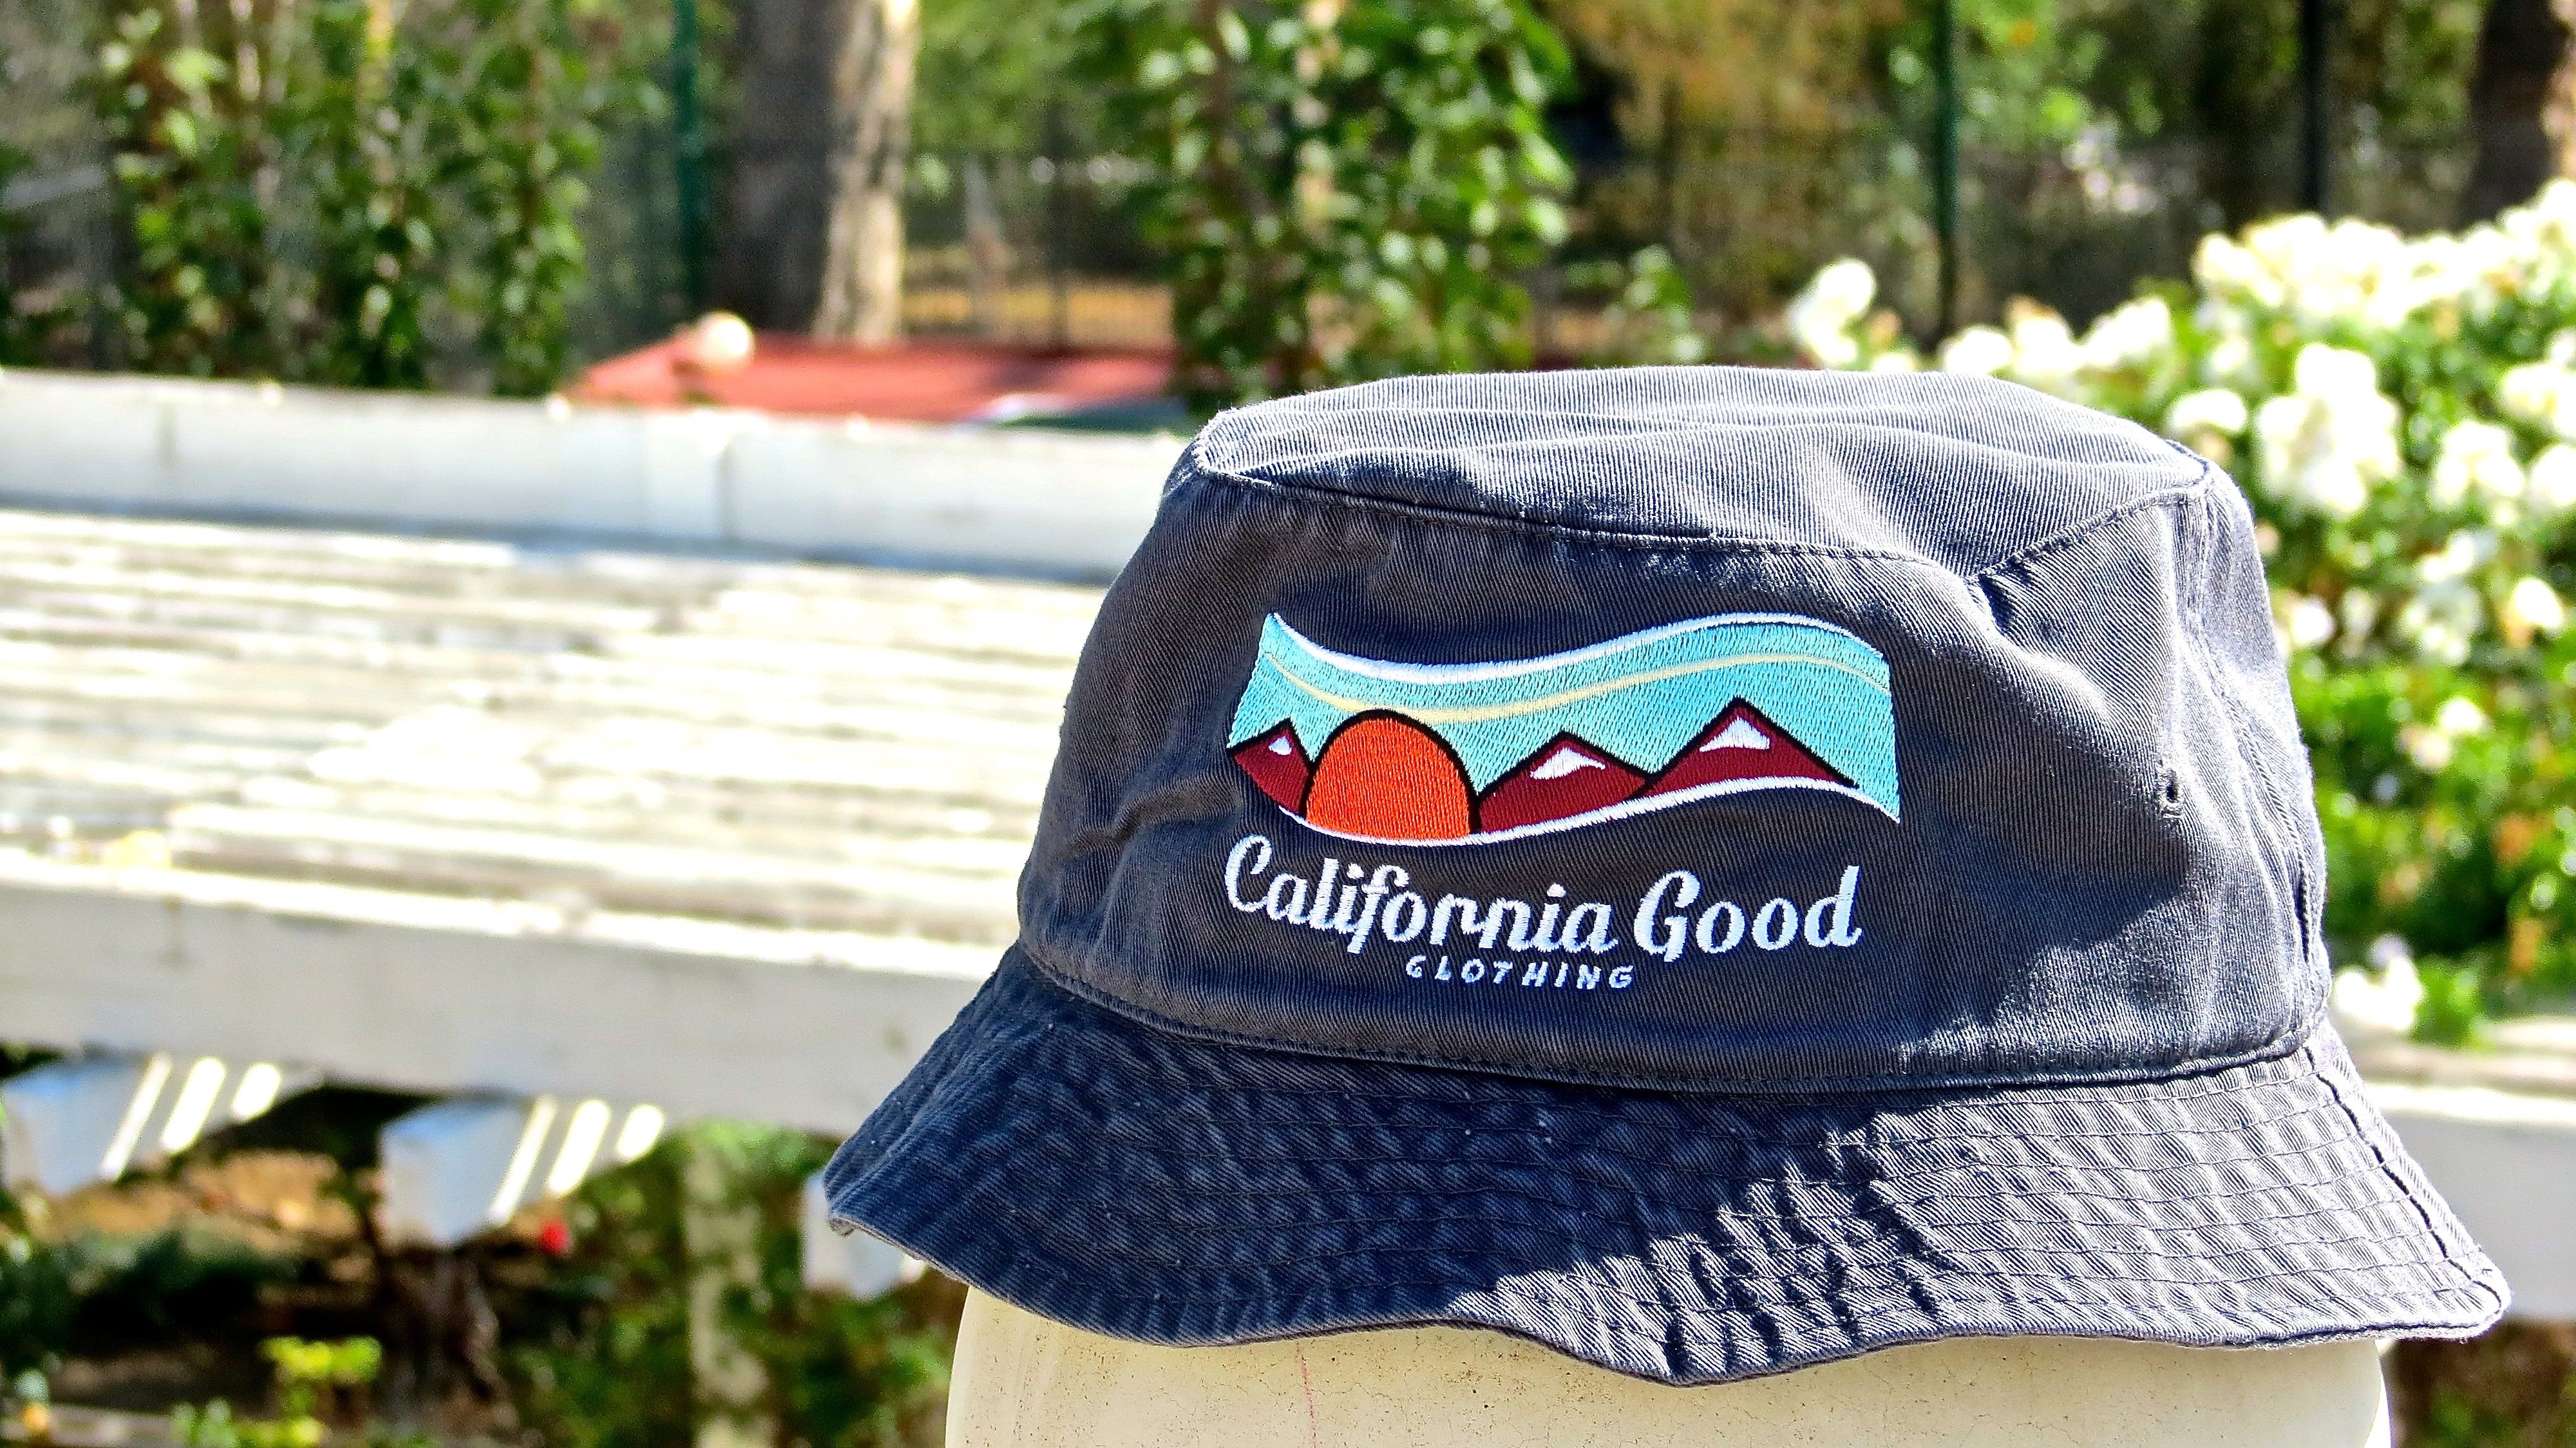 Garment Washed Bucket Hat in Charcoal Grey  #sea #ocean #view #design #nature #california #californiagood #hat #buckethat #outdoors